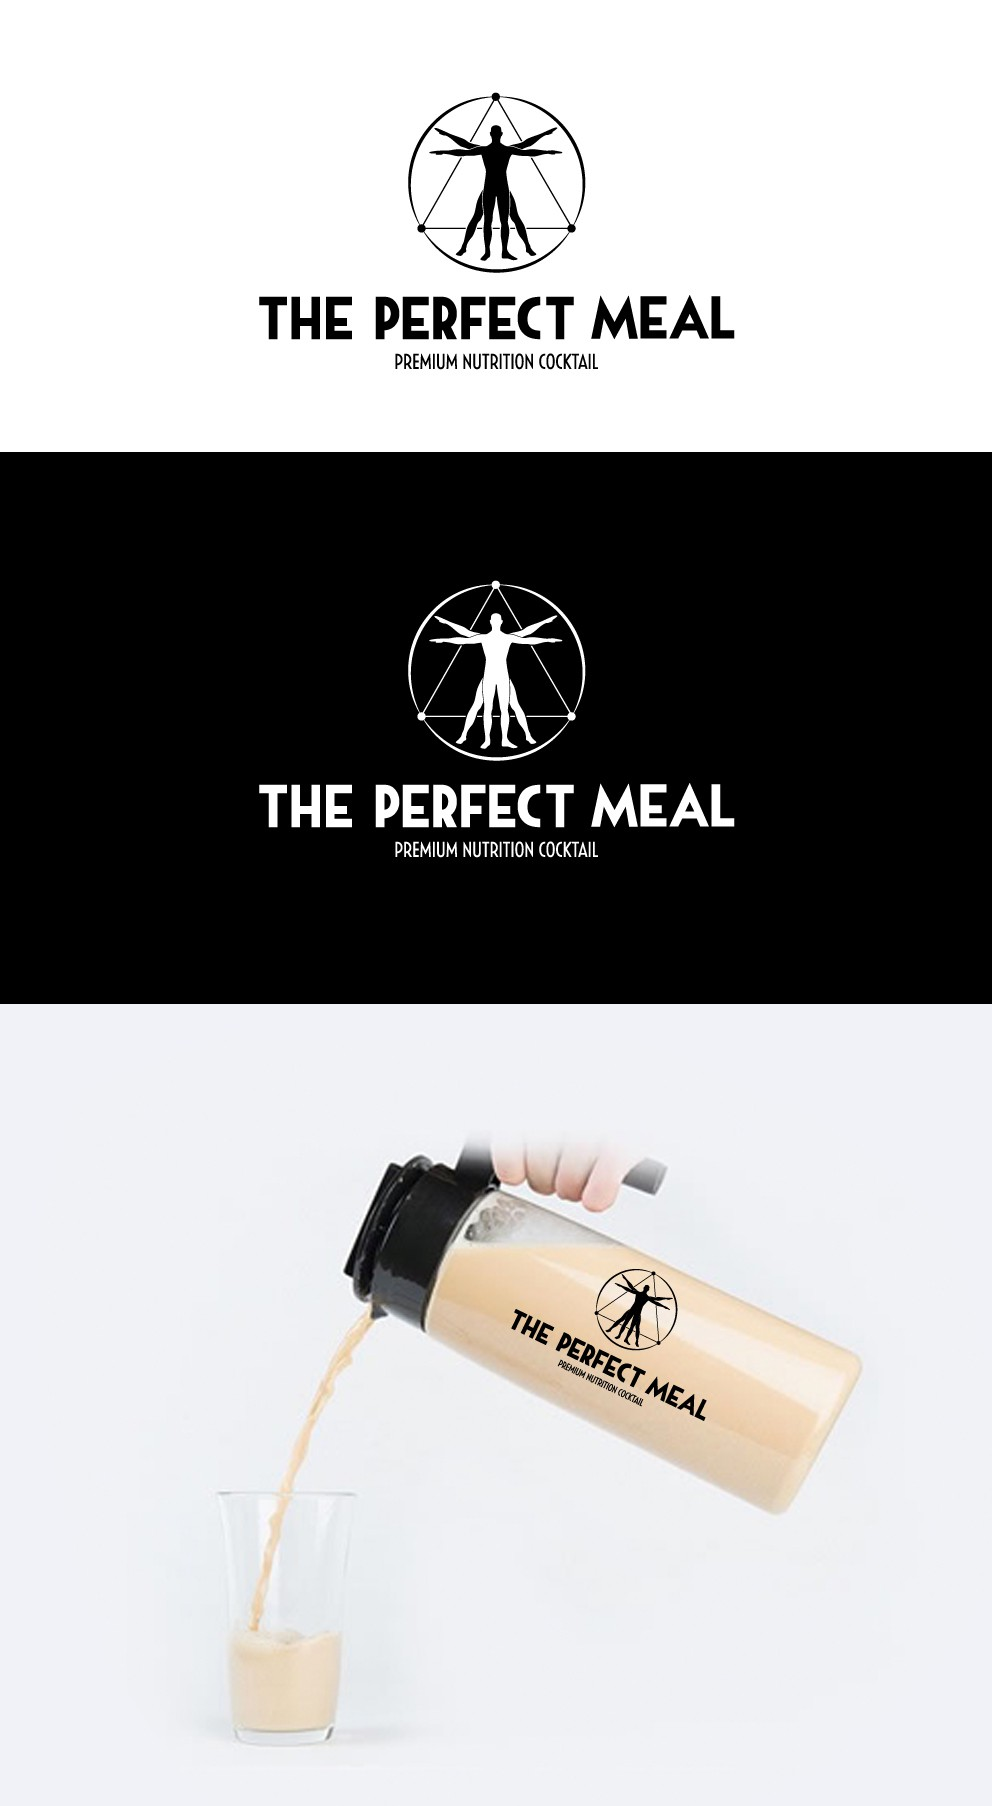 Revolutionizing food with The Perfect Meal